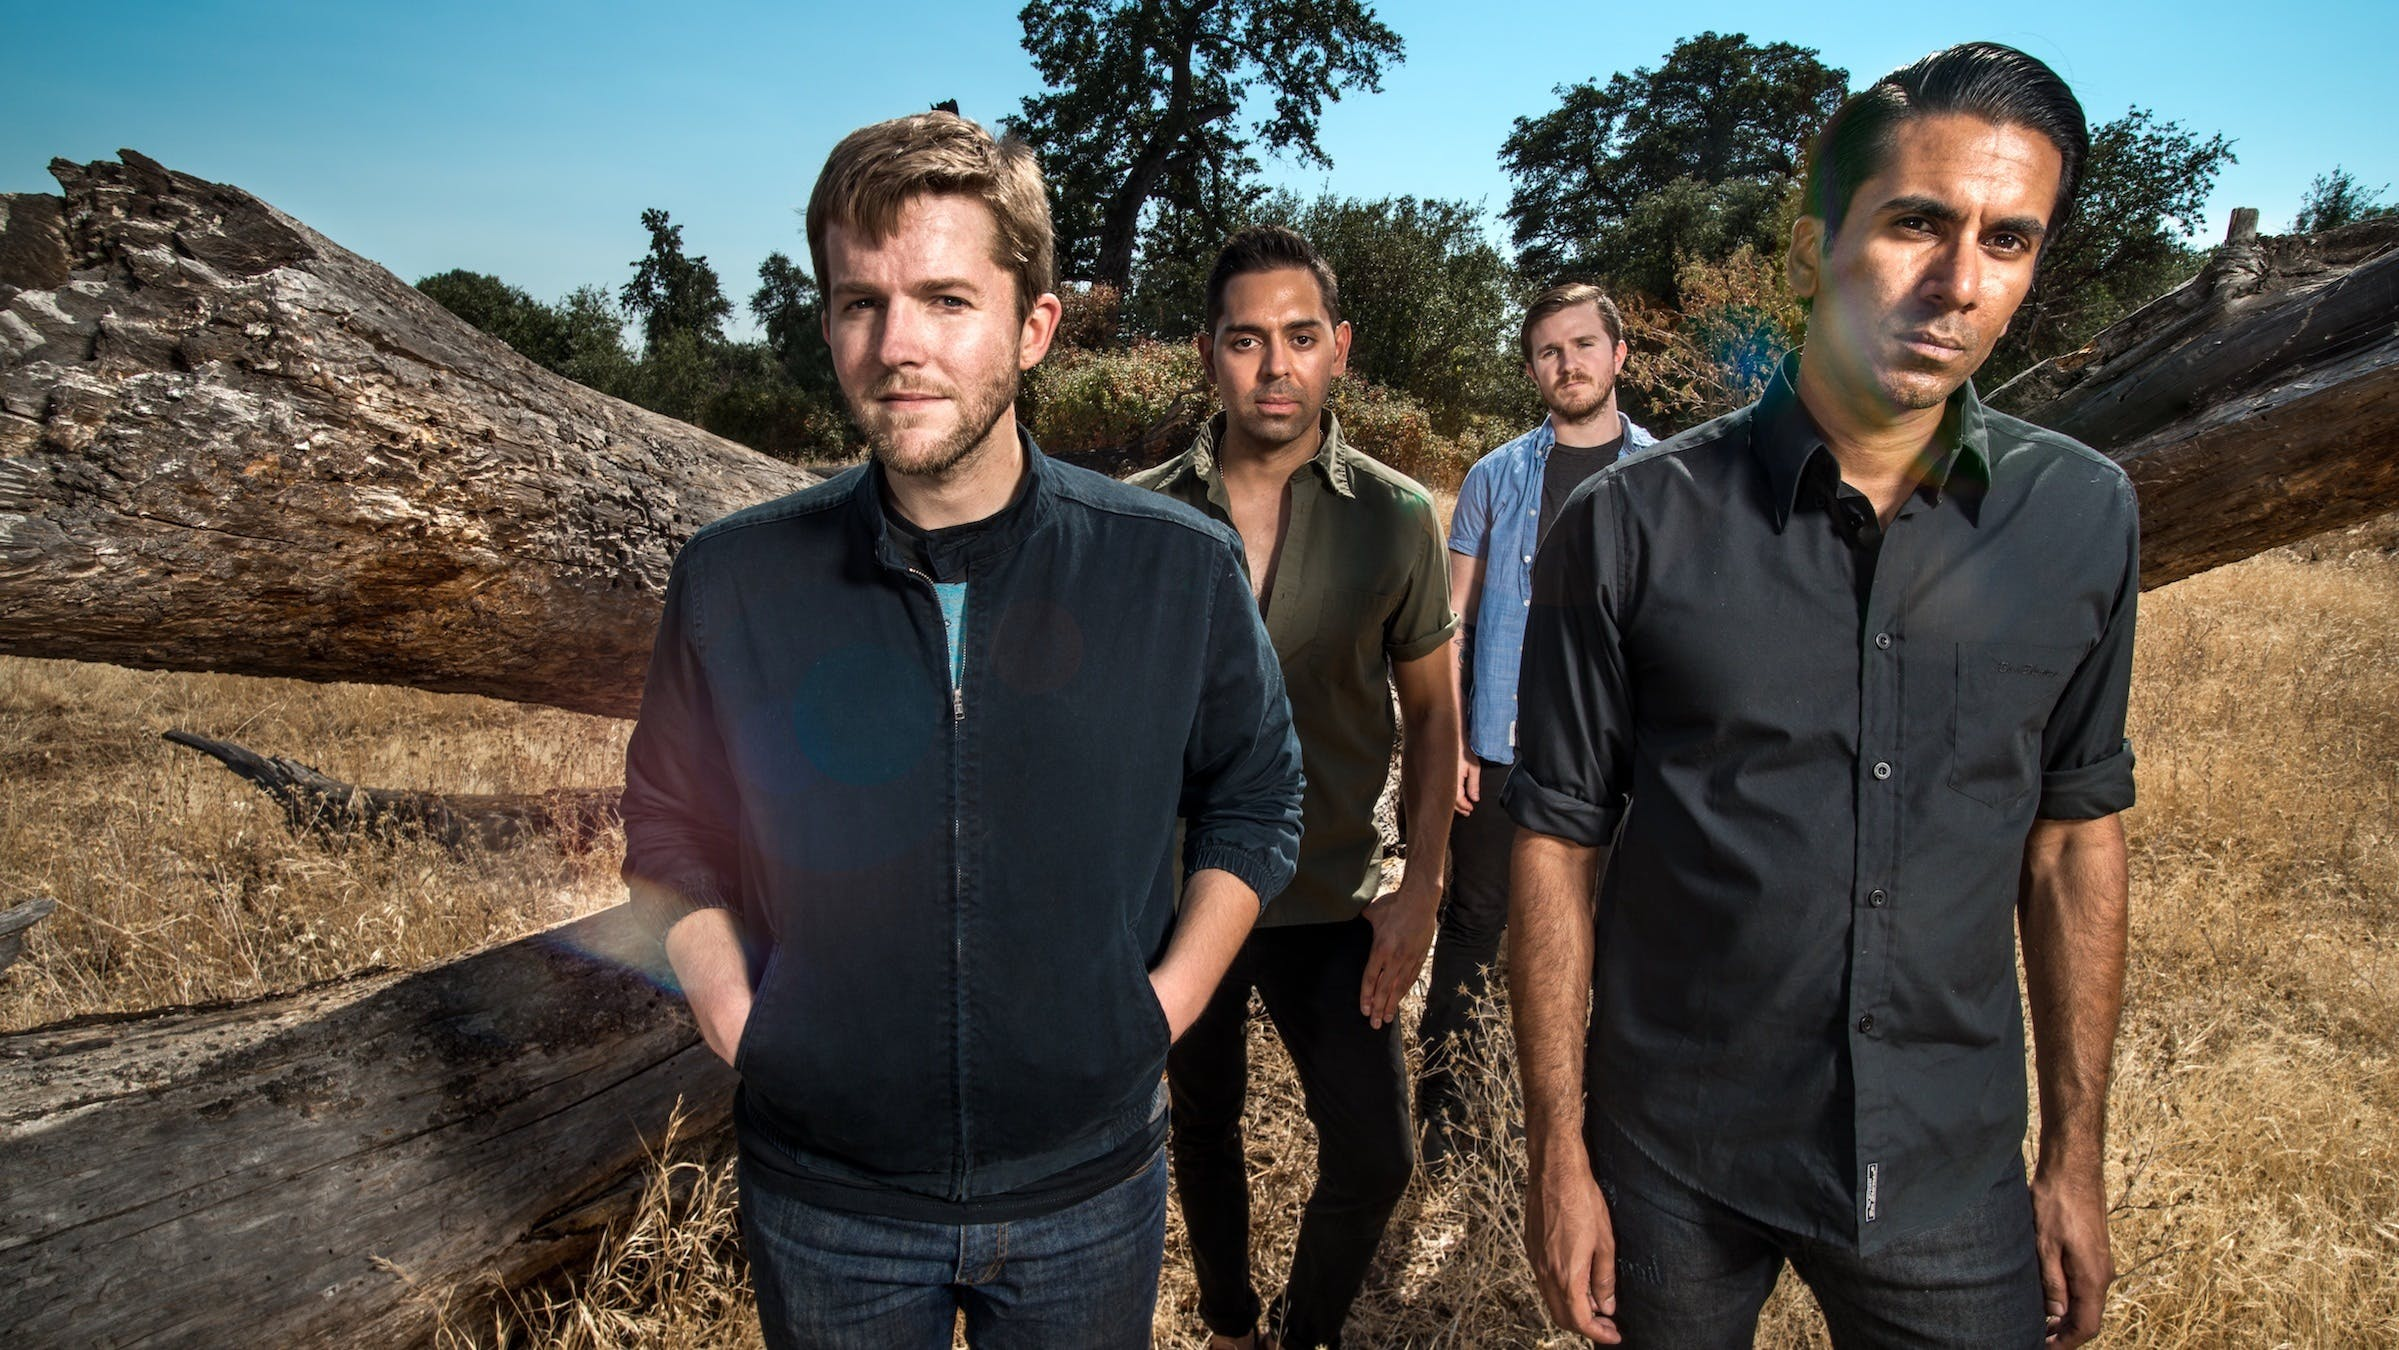 """Saves The Day's Chris Conley On New Album: """"It's The Summation Of My Life Up To This Point"""""""